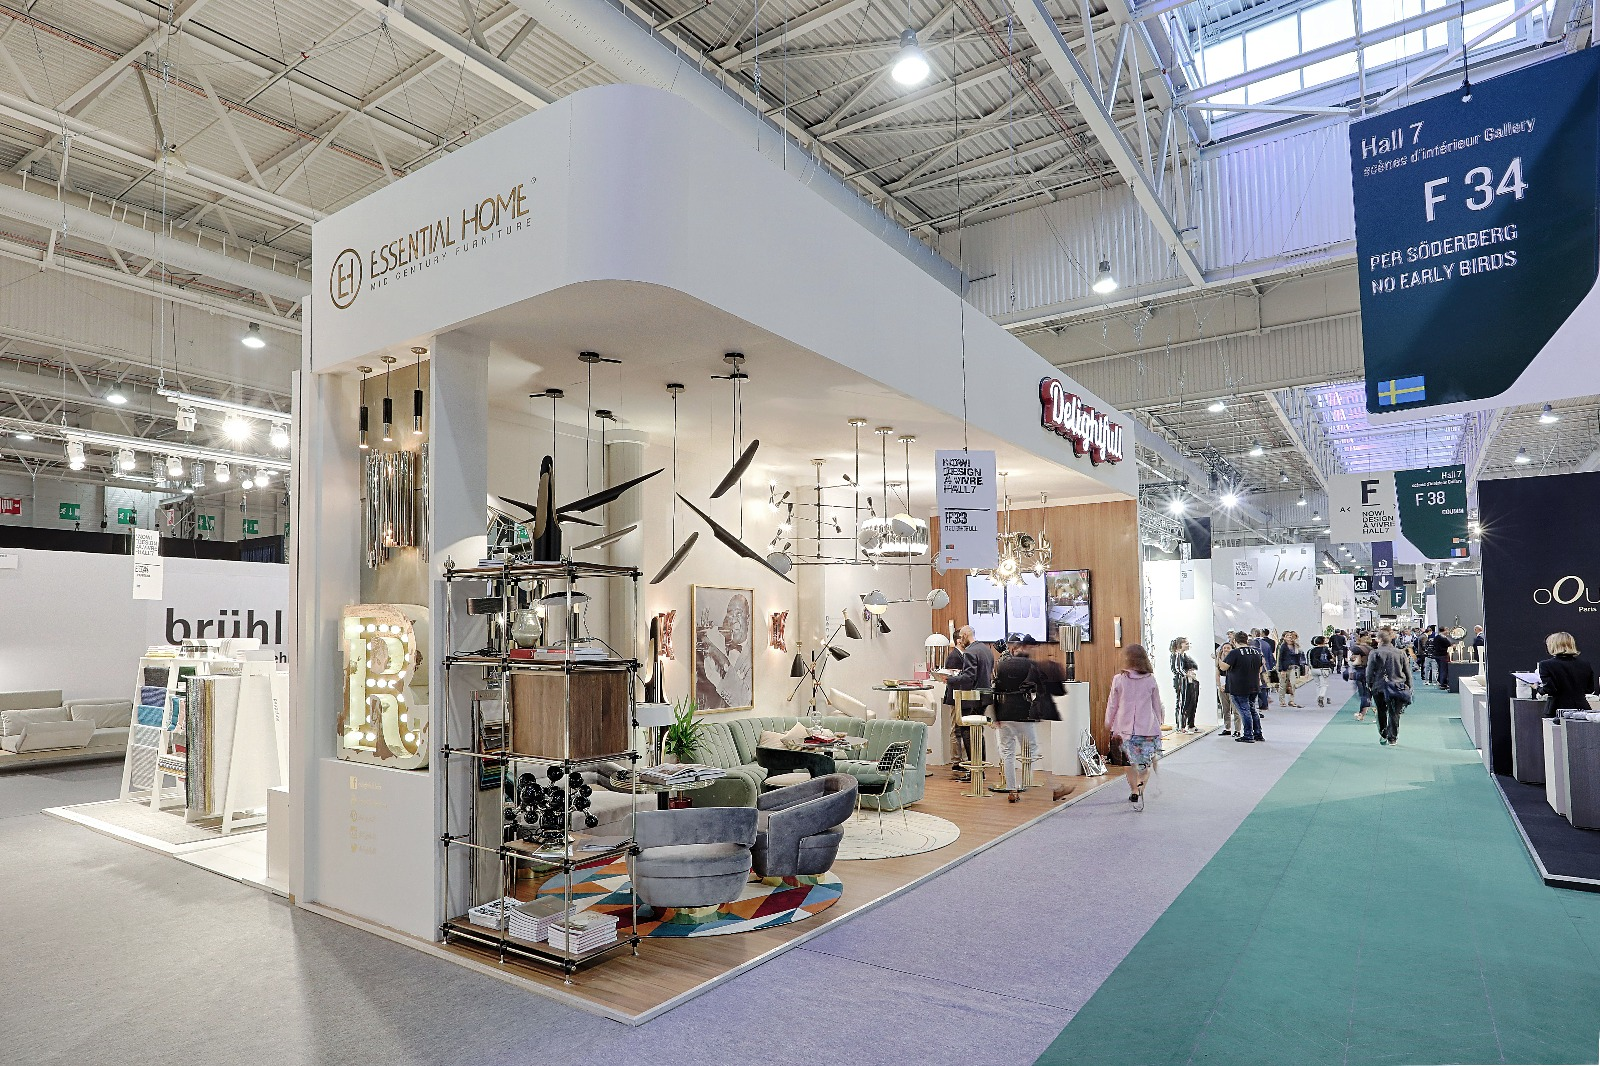 Let 39 s recap all the best moments from maison et objet 2017 for Maison et objet 2017